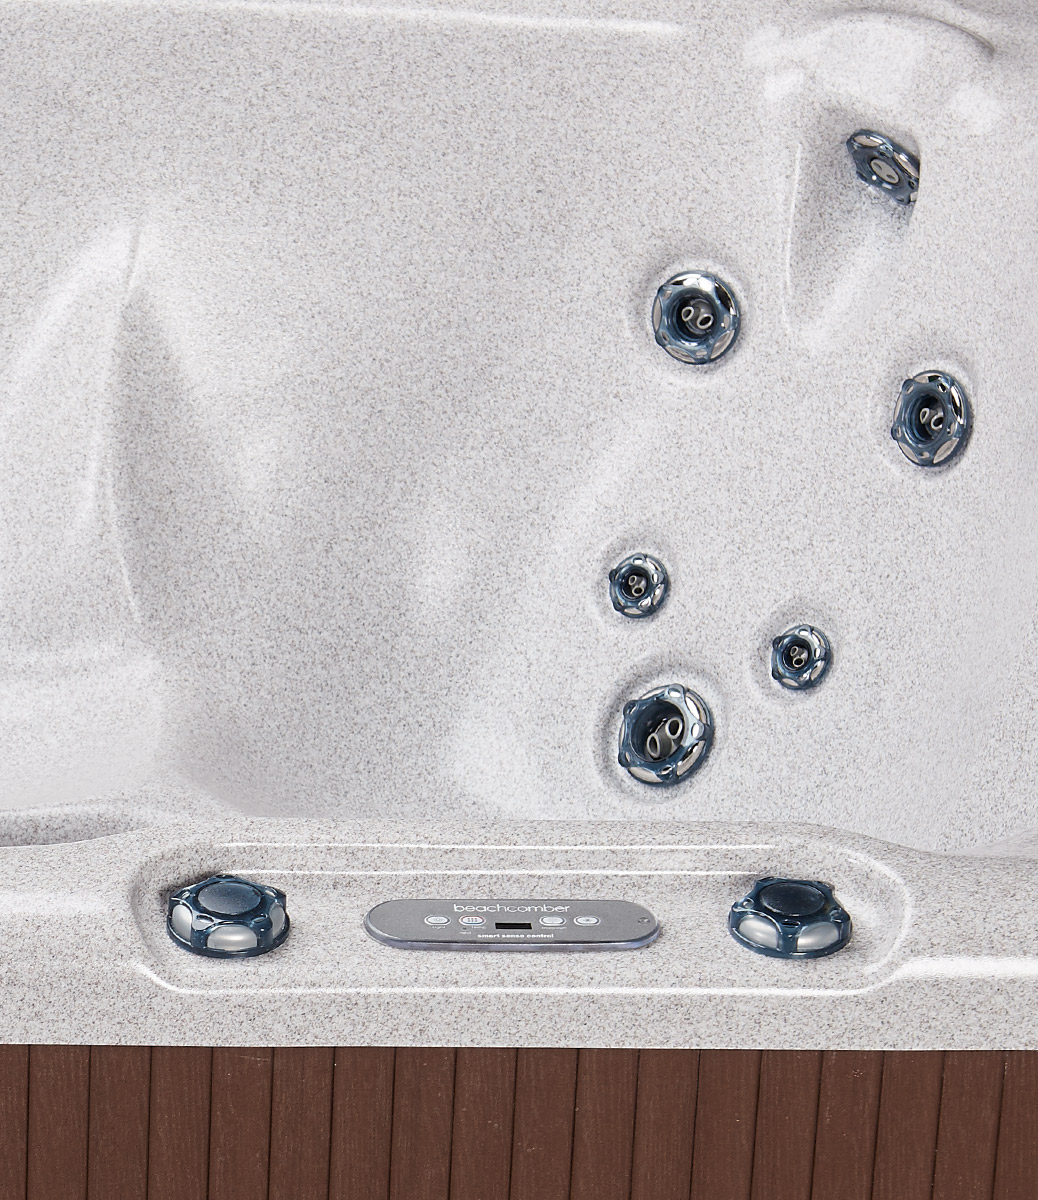 Beachcomber Hot Tubs Modèle 340